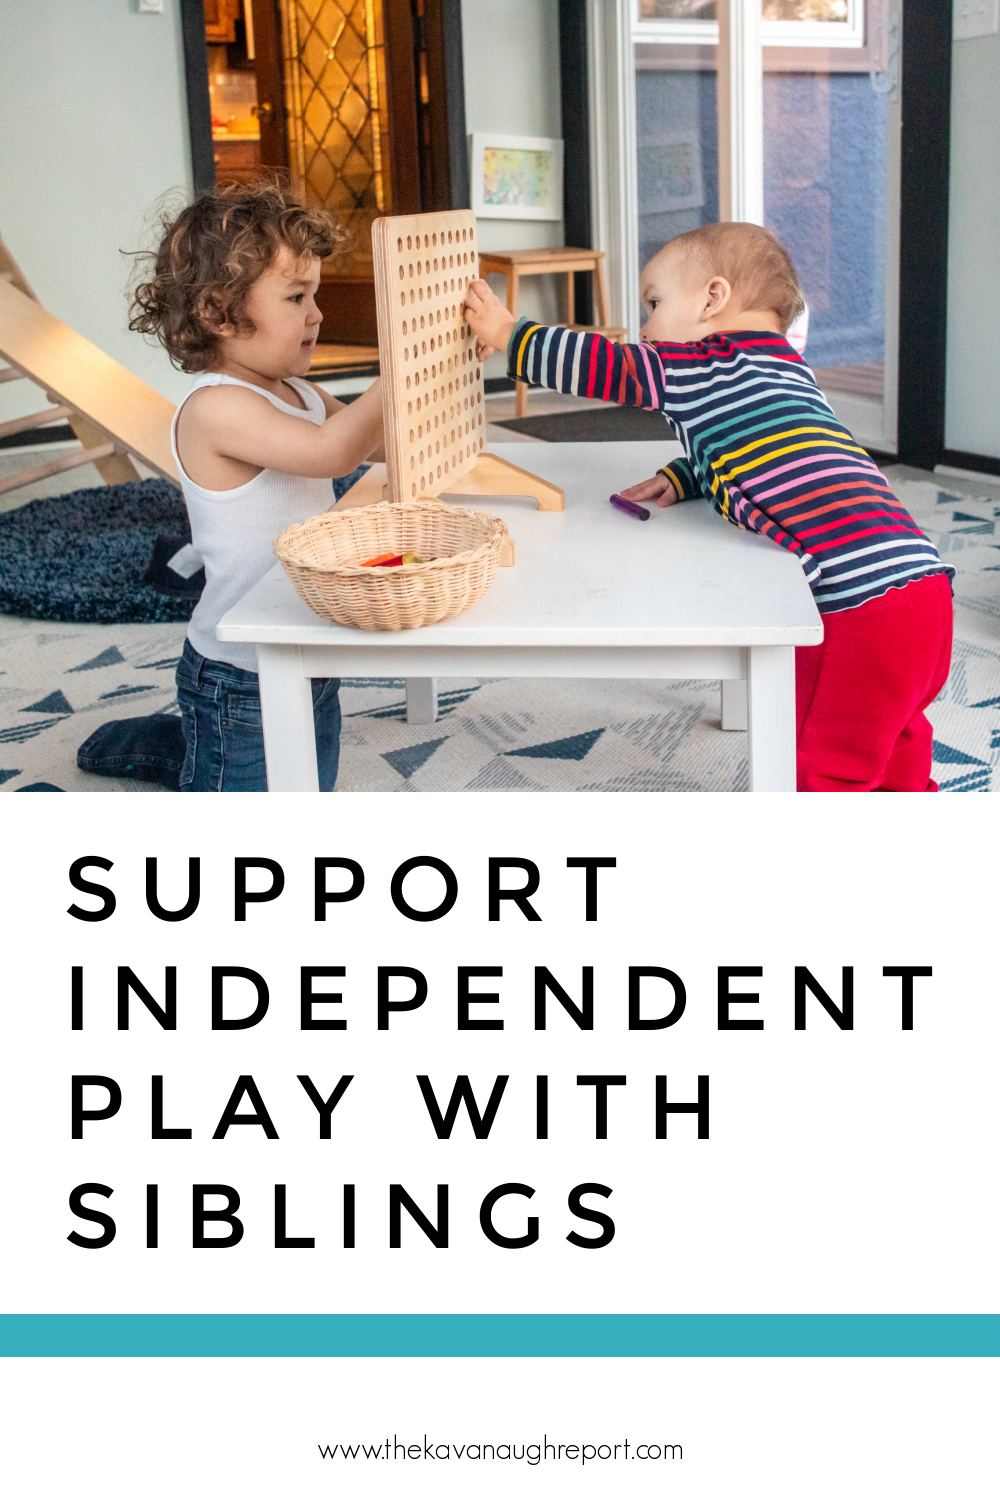 Montessori parenting advice including 4 easy ways to support independent play between siblings at home.